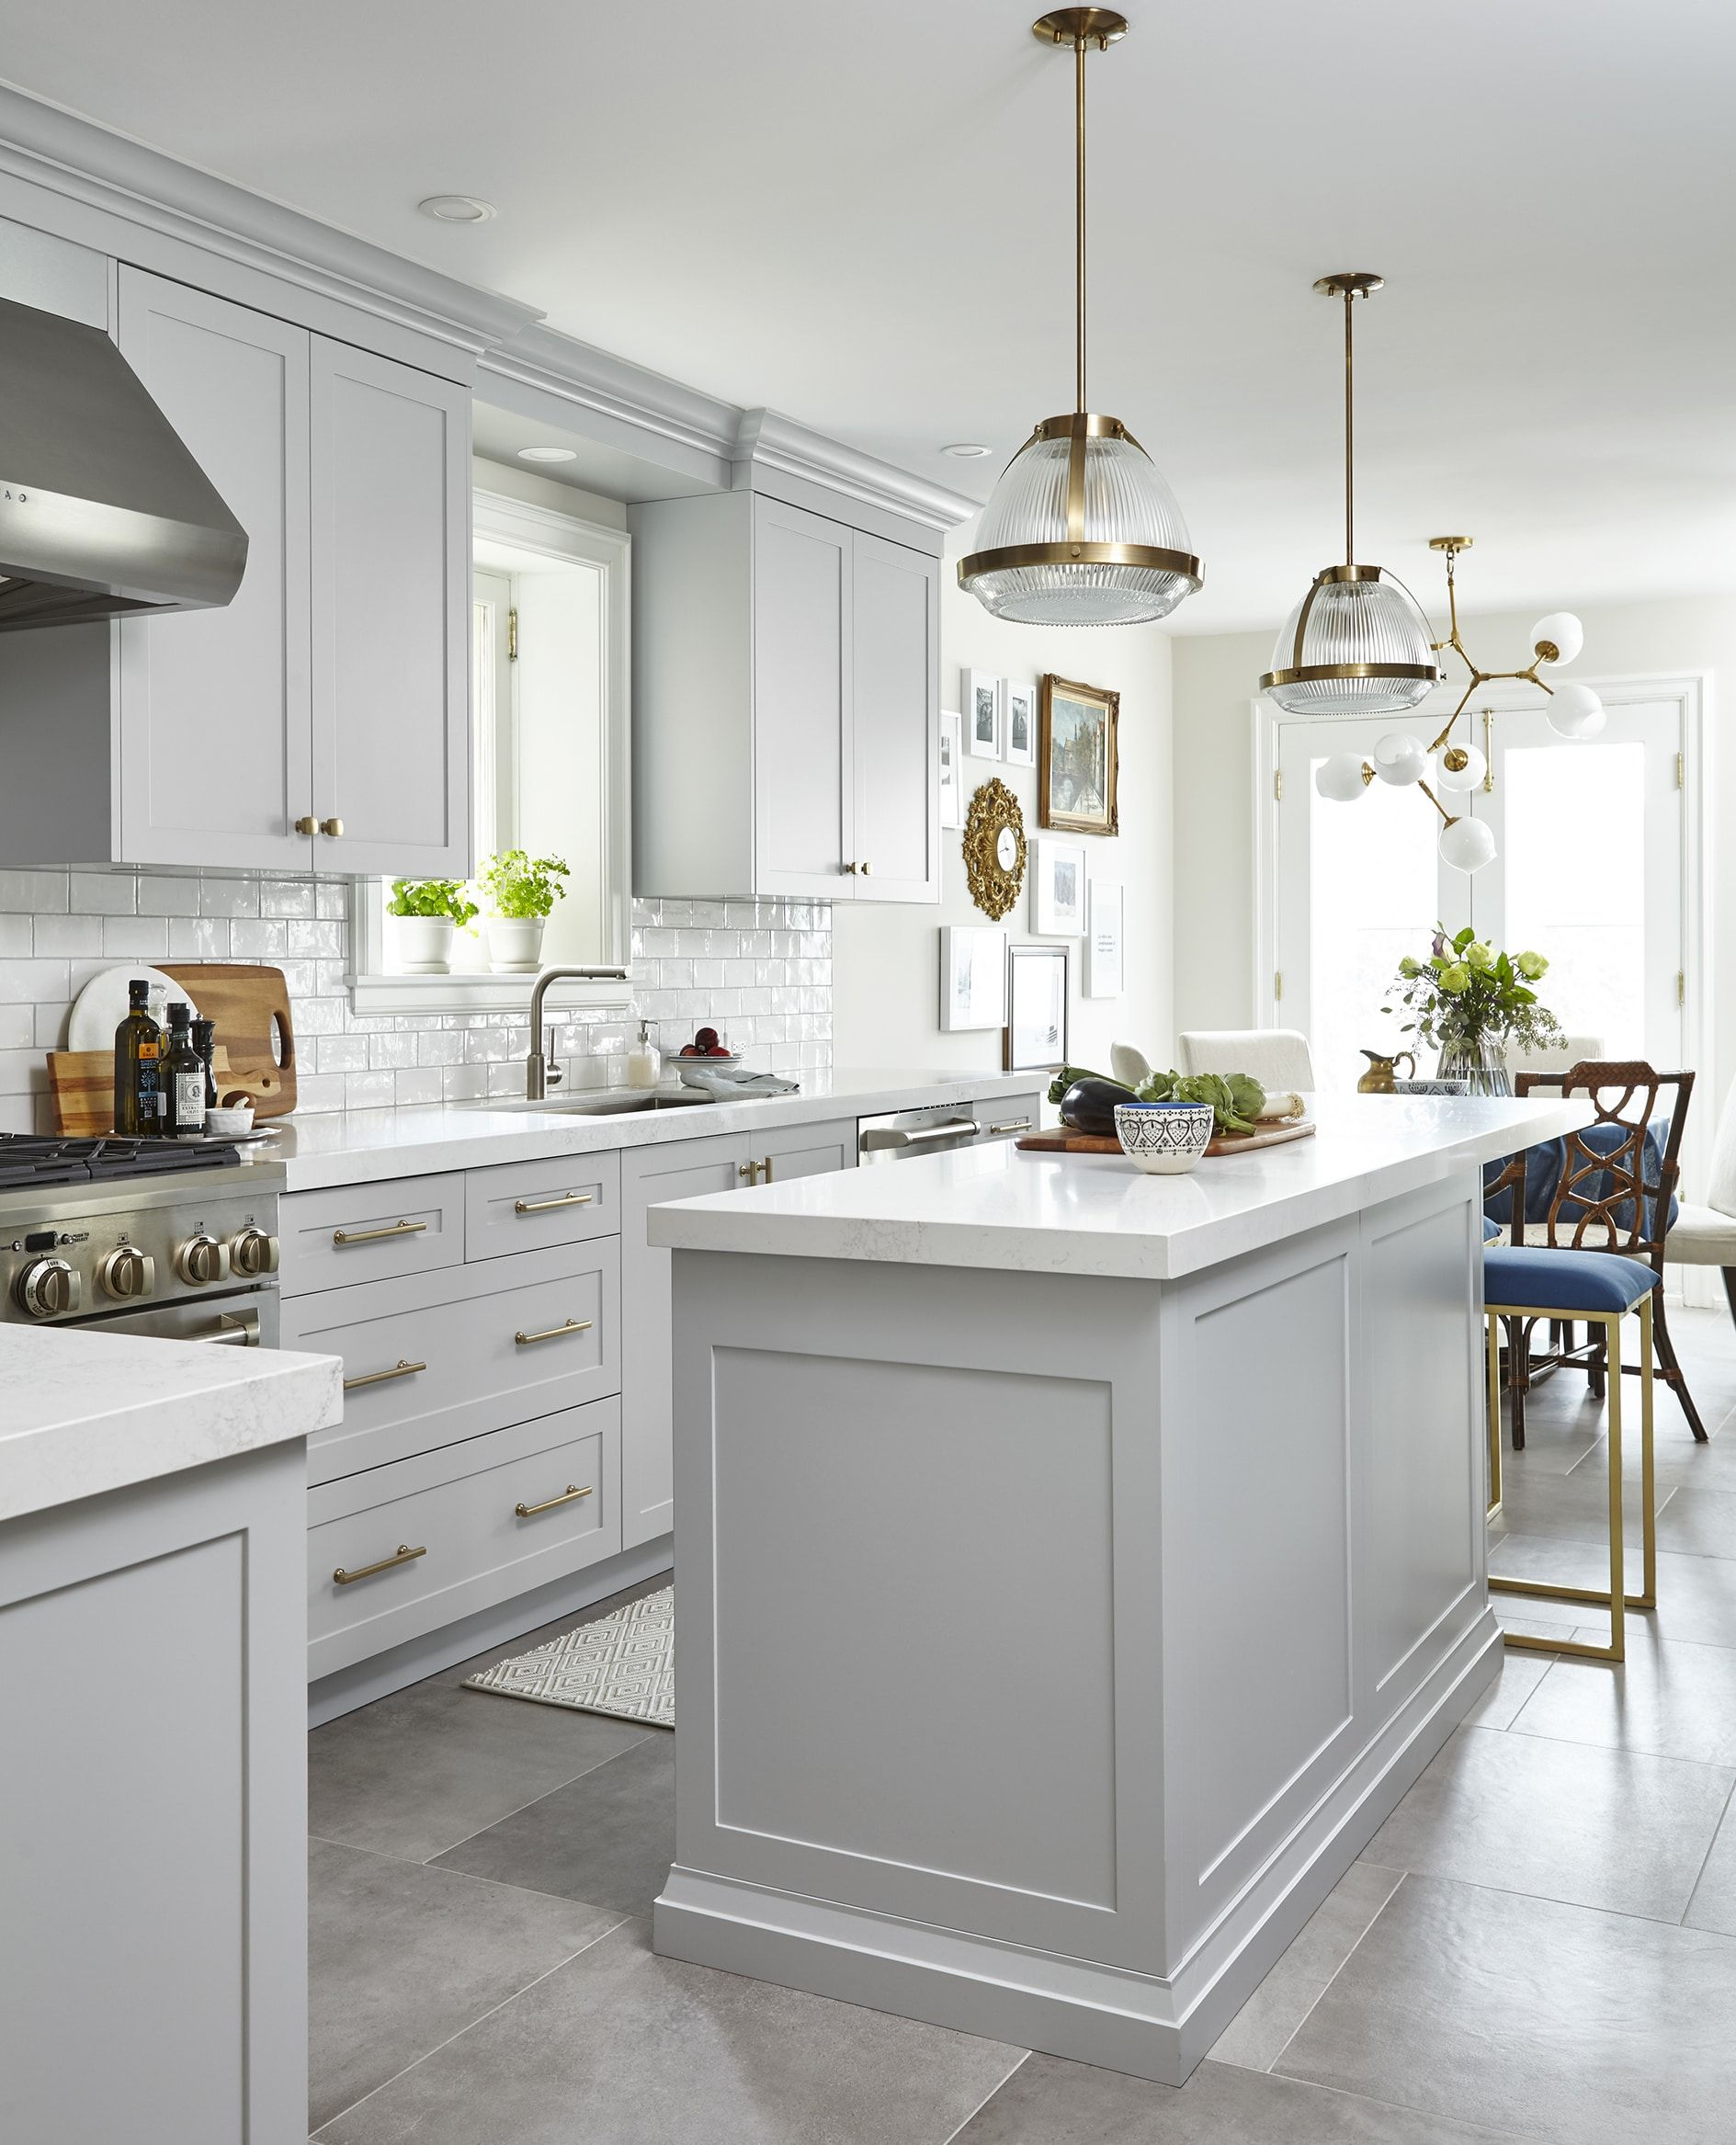 Light Grey Kitchen With Celestial Chandelier Over The Kitchen Table White Quartz Countertops White Kitchen Design White Kitchen Remodeling Kitchen Concepts